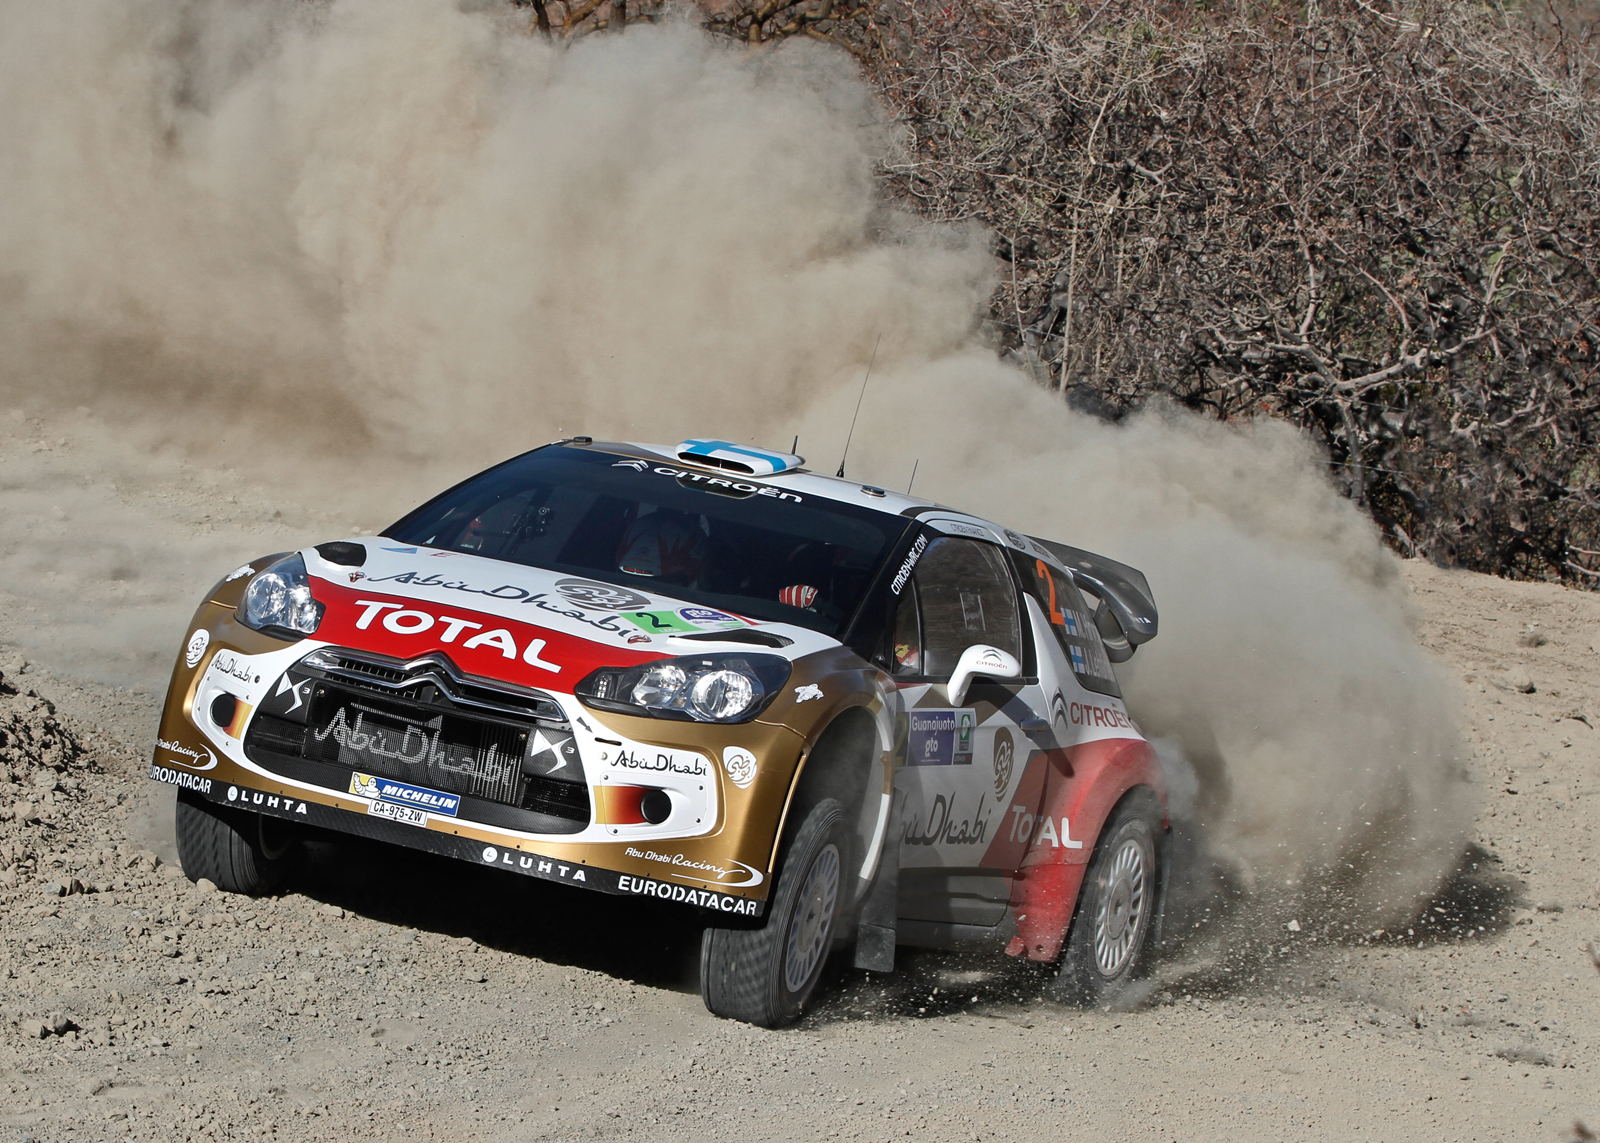 WORLD RALLY CHAMPIONSHIP 2013 - RALLYE MEXICO